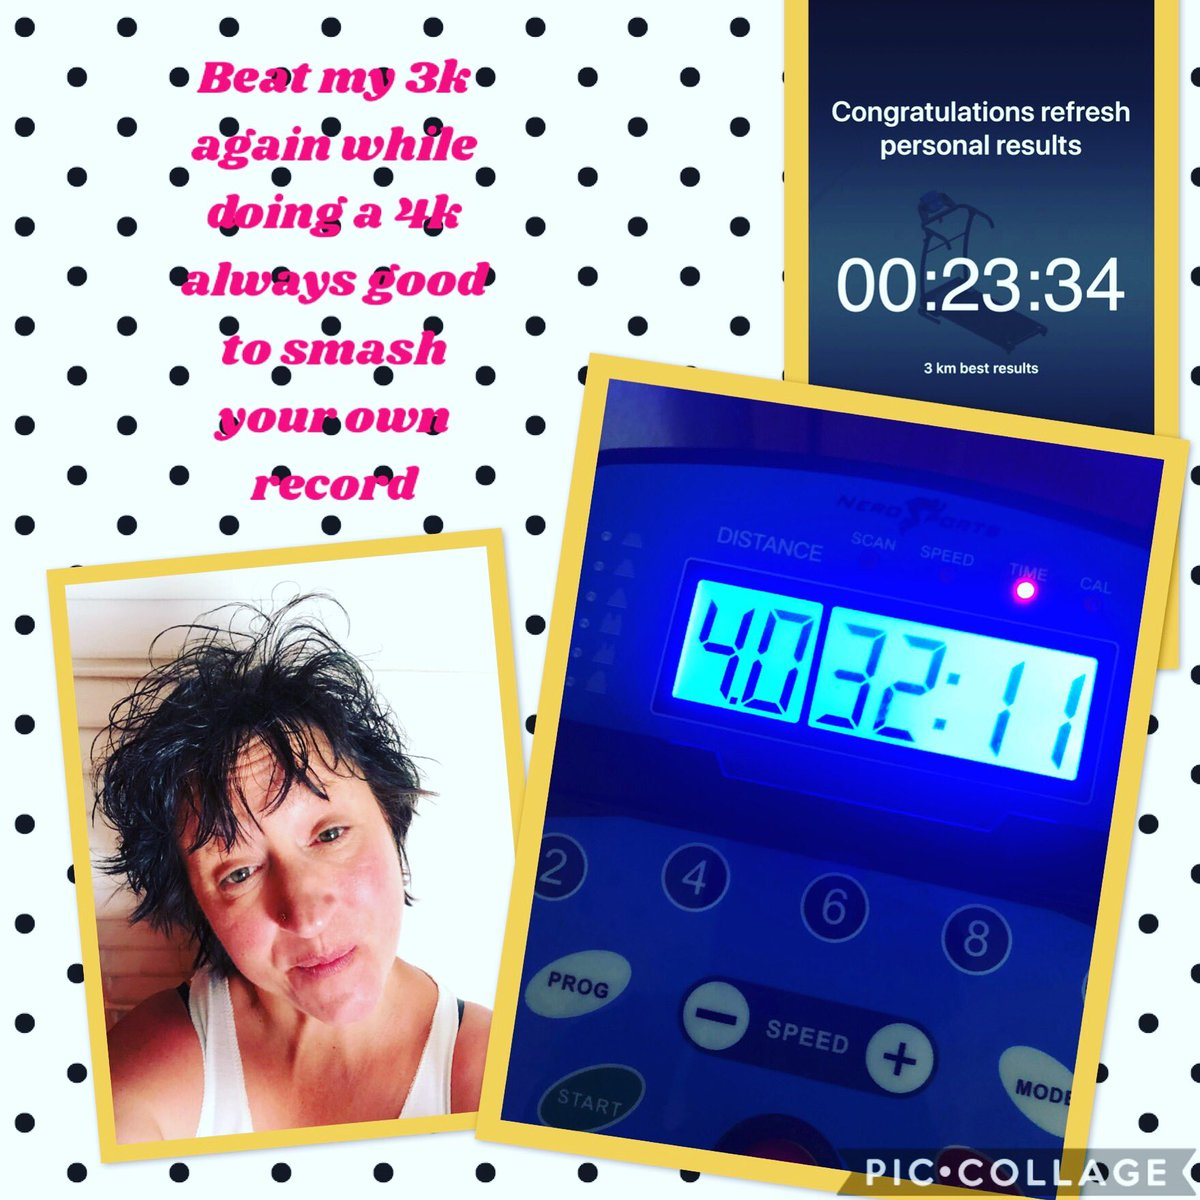 Love smashing my own records!!! Be it small does not matter 4 months ago i could not even manage 1k #results #treadmillworkout #treadmilllife #treadmillgoals #wednesdayvibes #dailyexcercise #onesimplechange #lovemylife<br>http://pic.twitter.com/WMqzlGY4Is